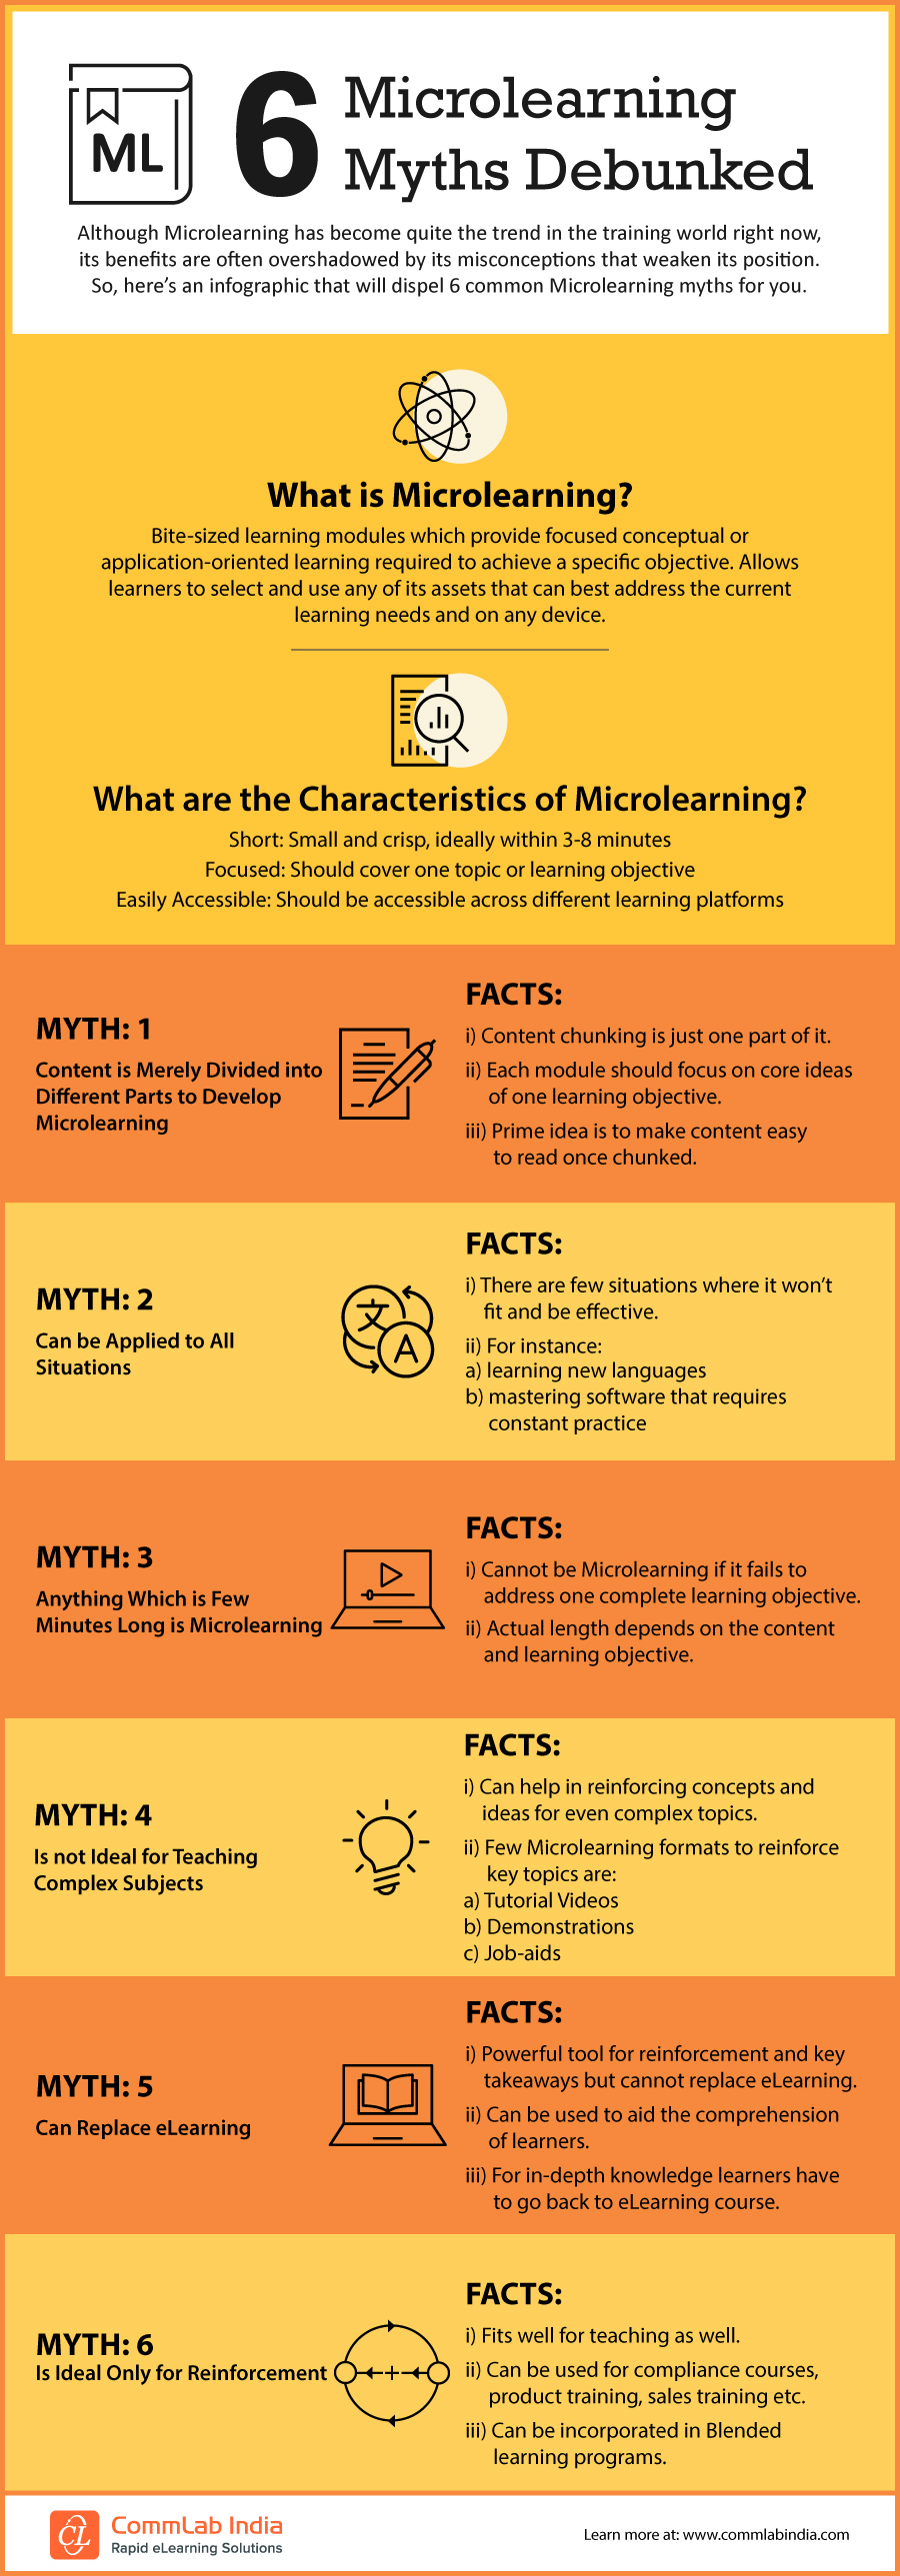 6 Microlearning Myths Debunked [Infographic]